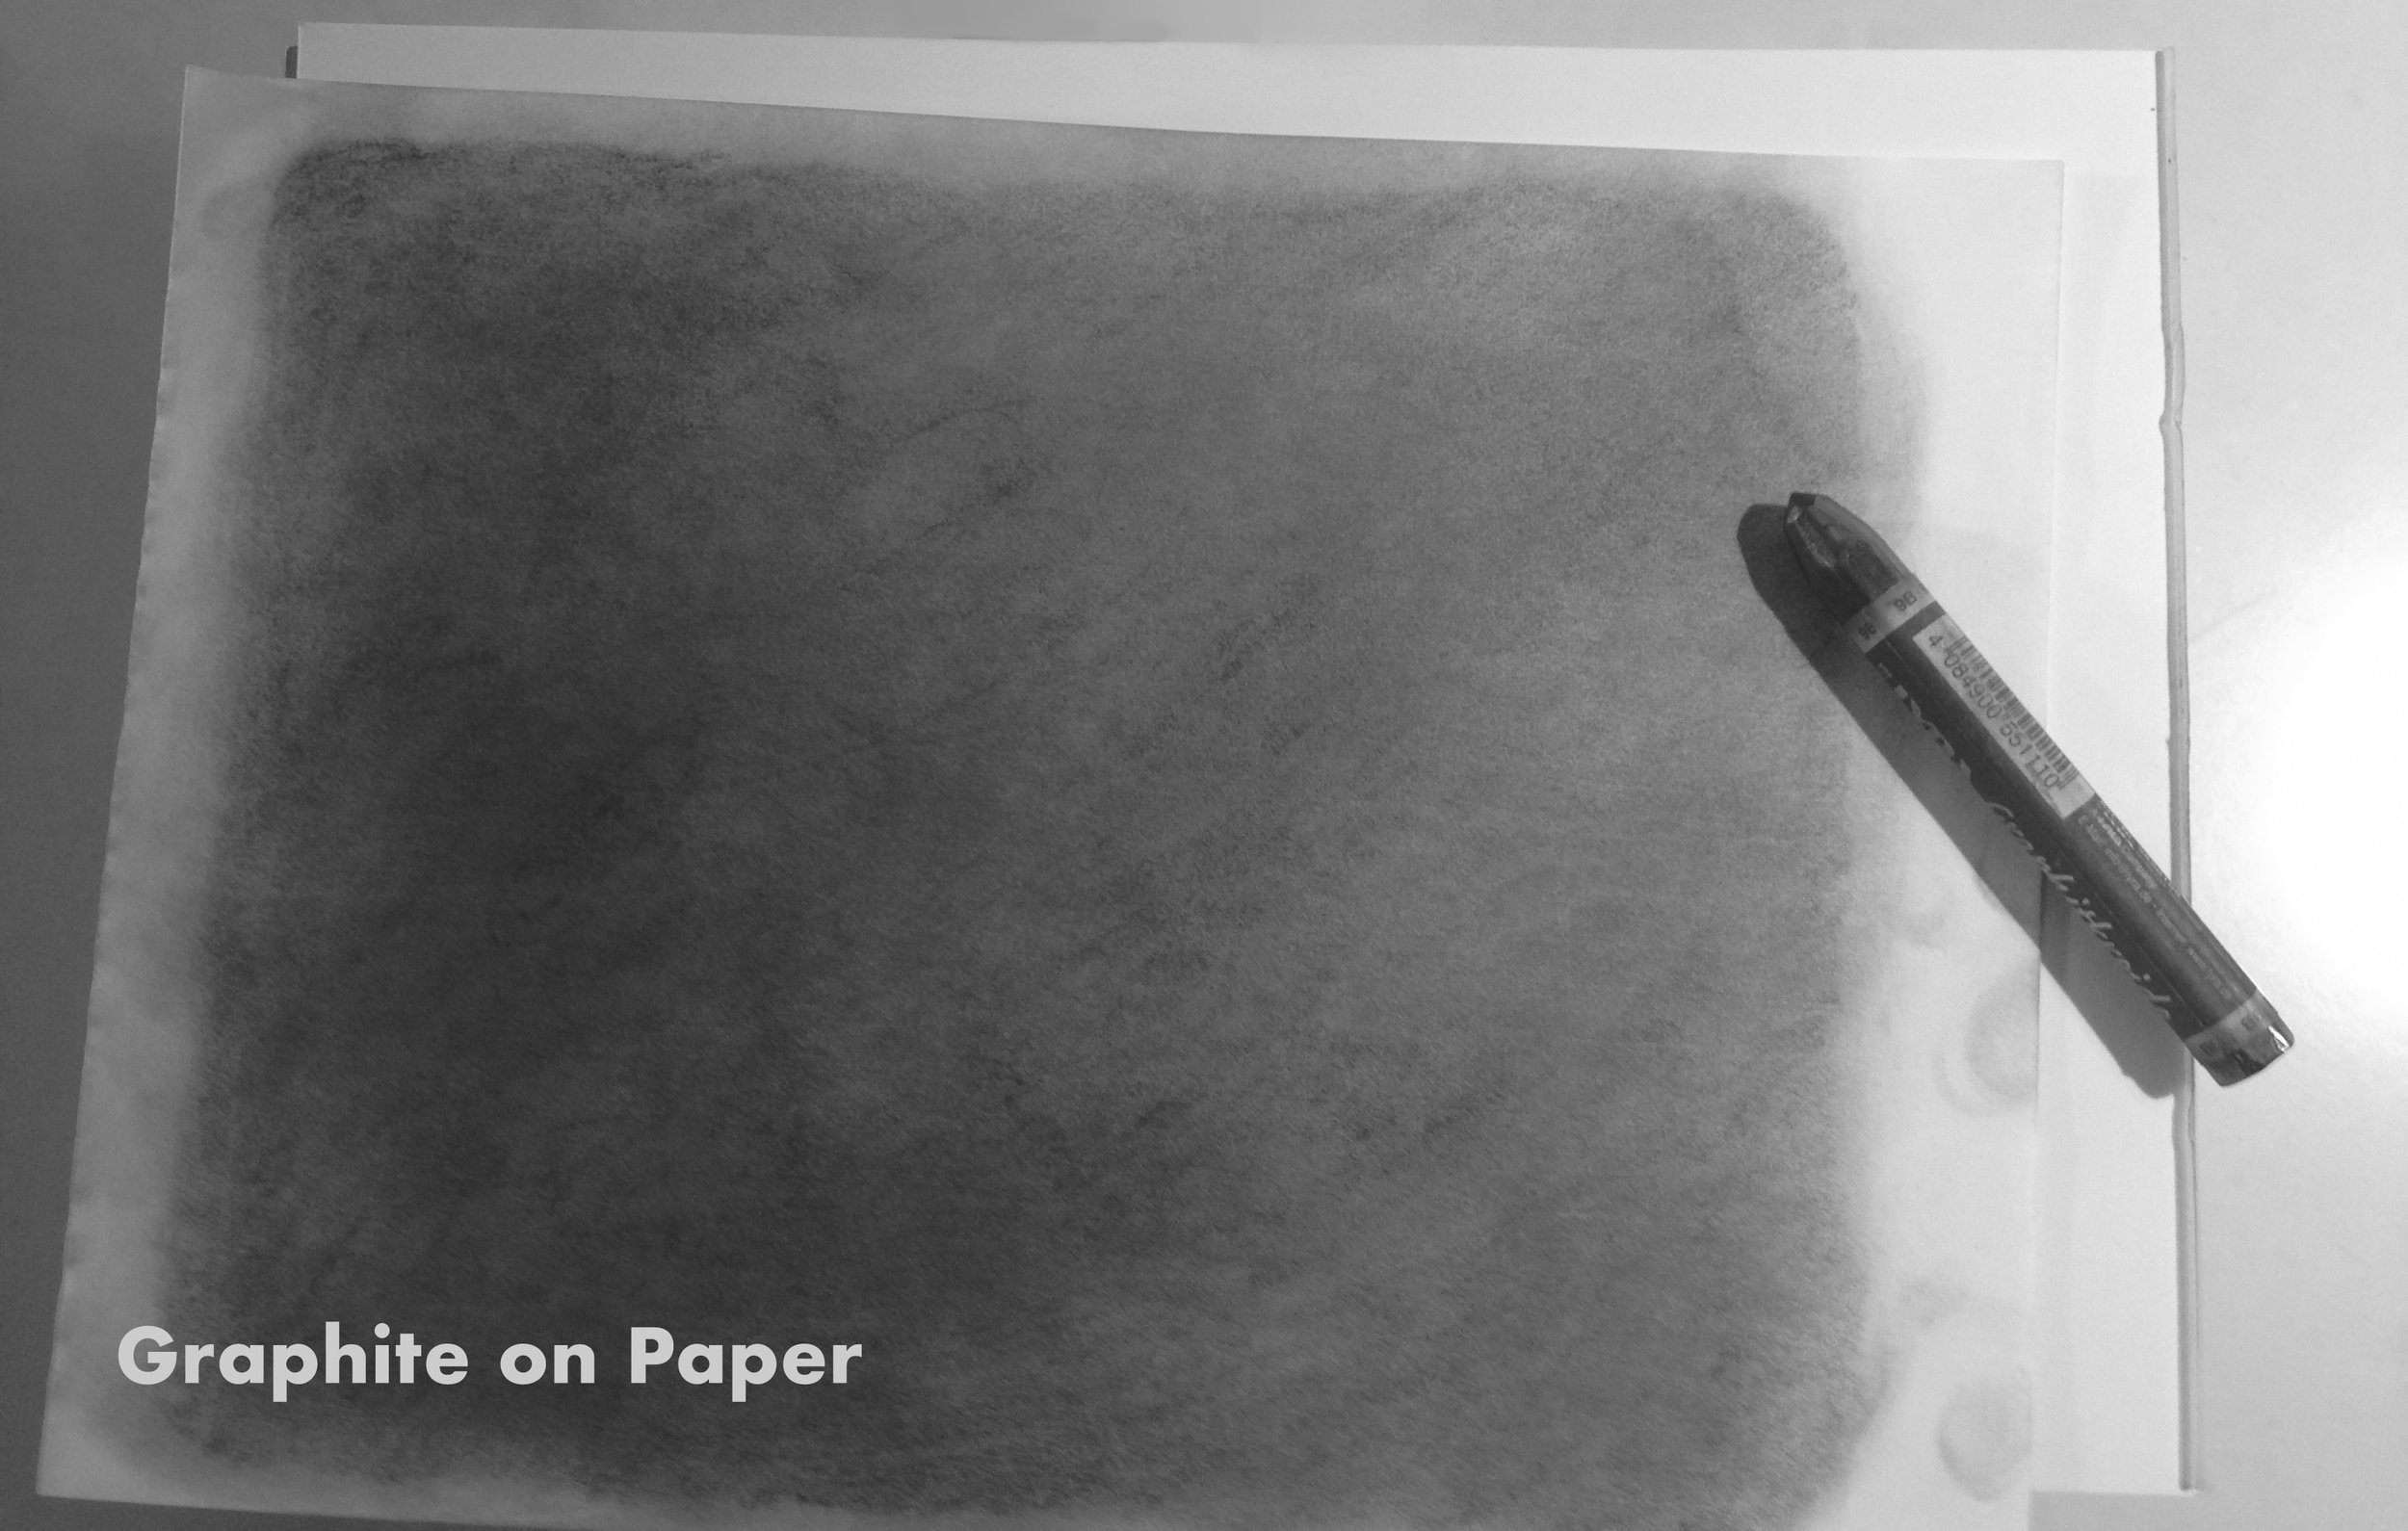 Here is a sheet of paper that I have covered evenly with graphite. This texture is then scanned into the computer and used as a layer on top of my illustration to add a visual grain.